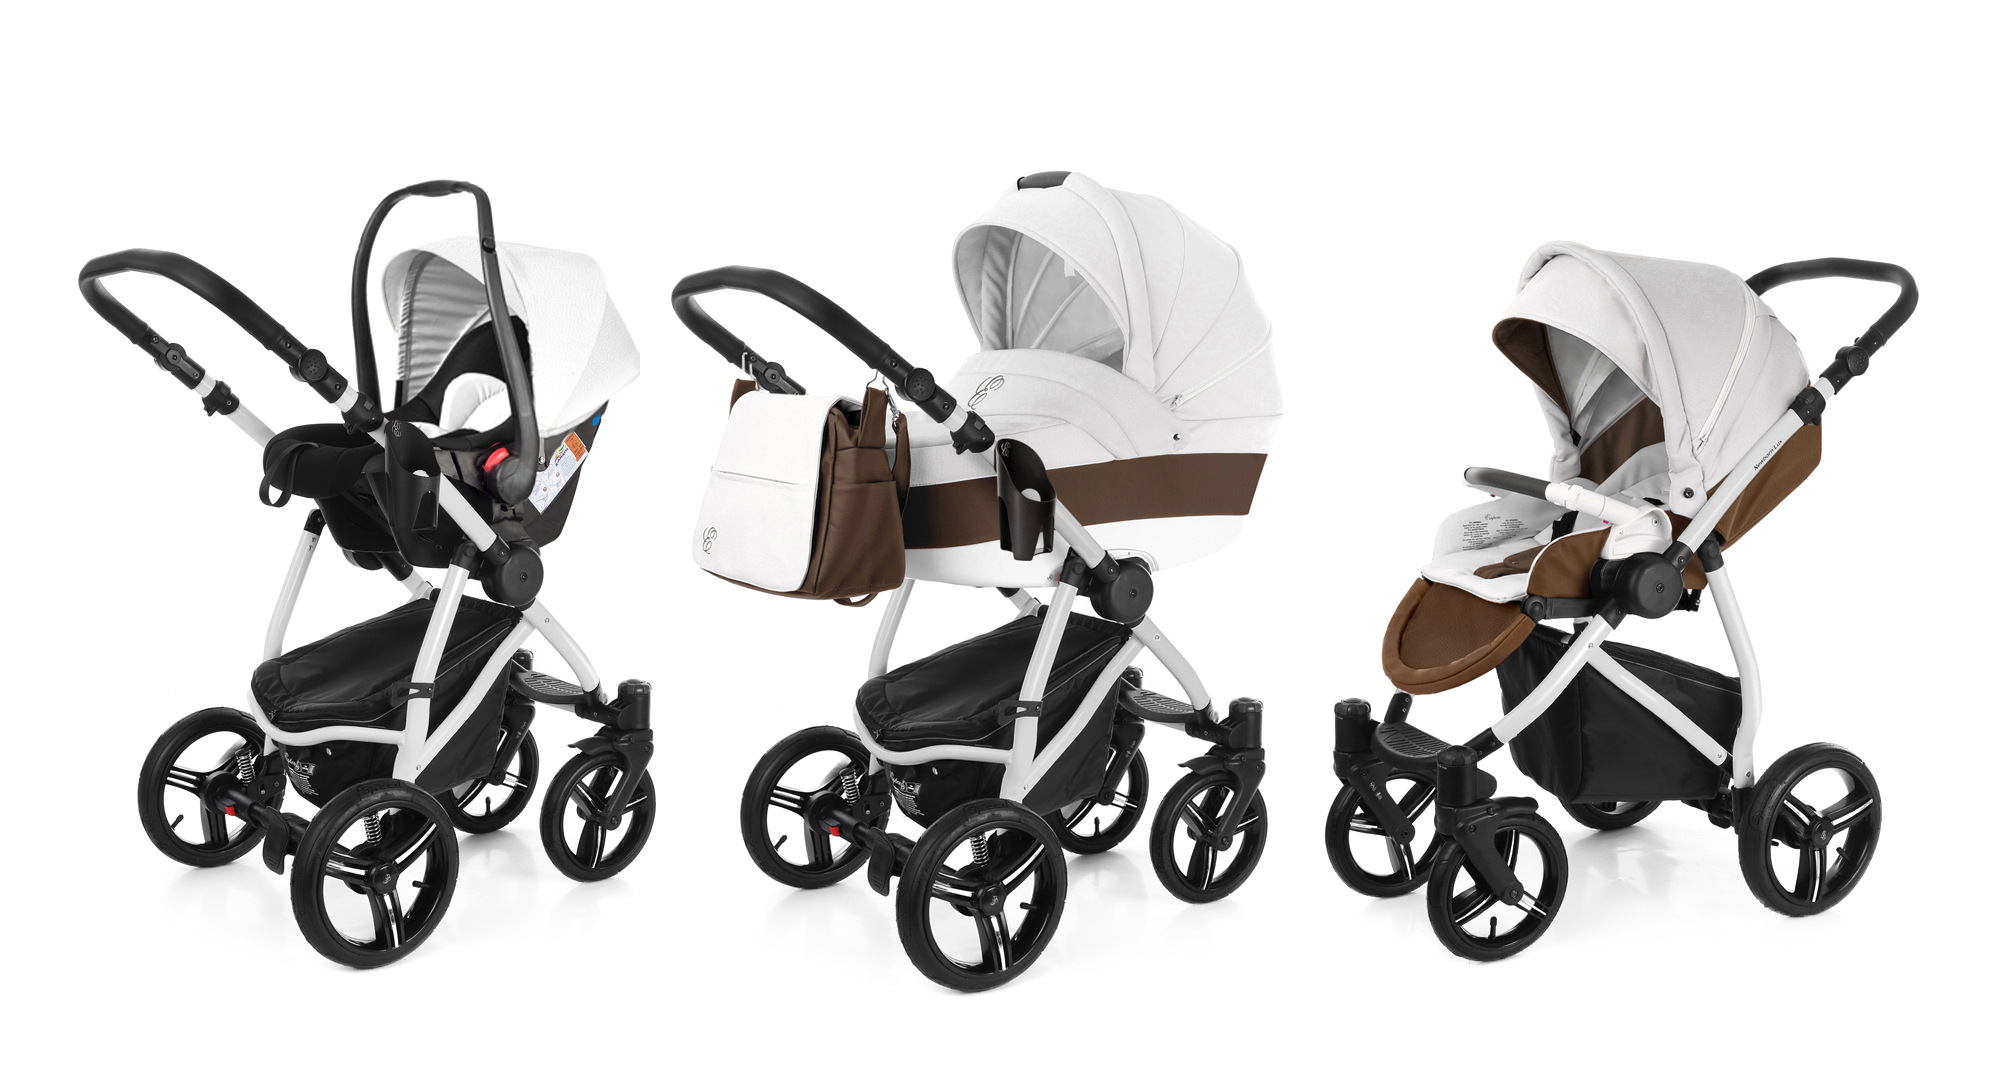 Коляска 3 в 1 Esspero Grand Newborn Lux (шасси Grey) Canella leatherette